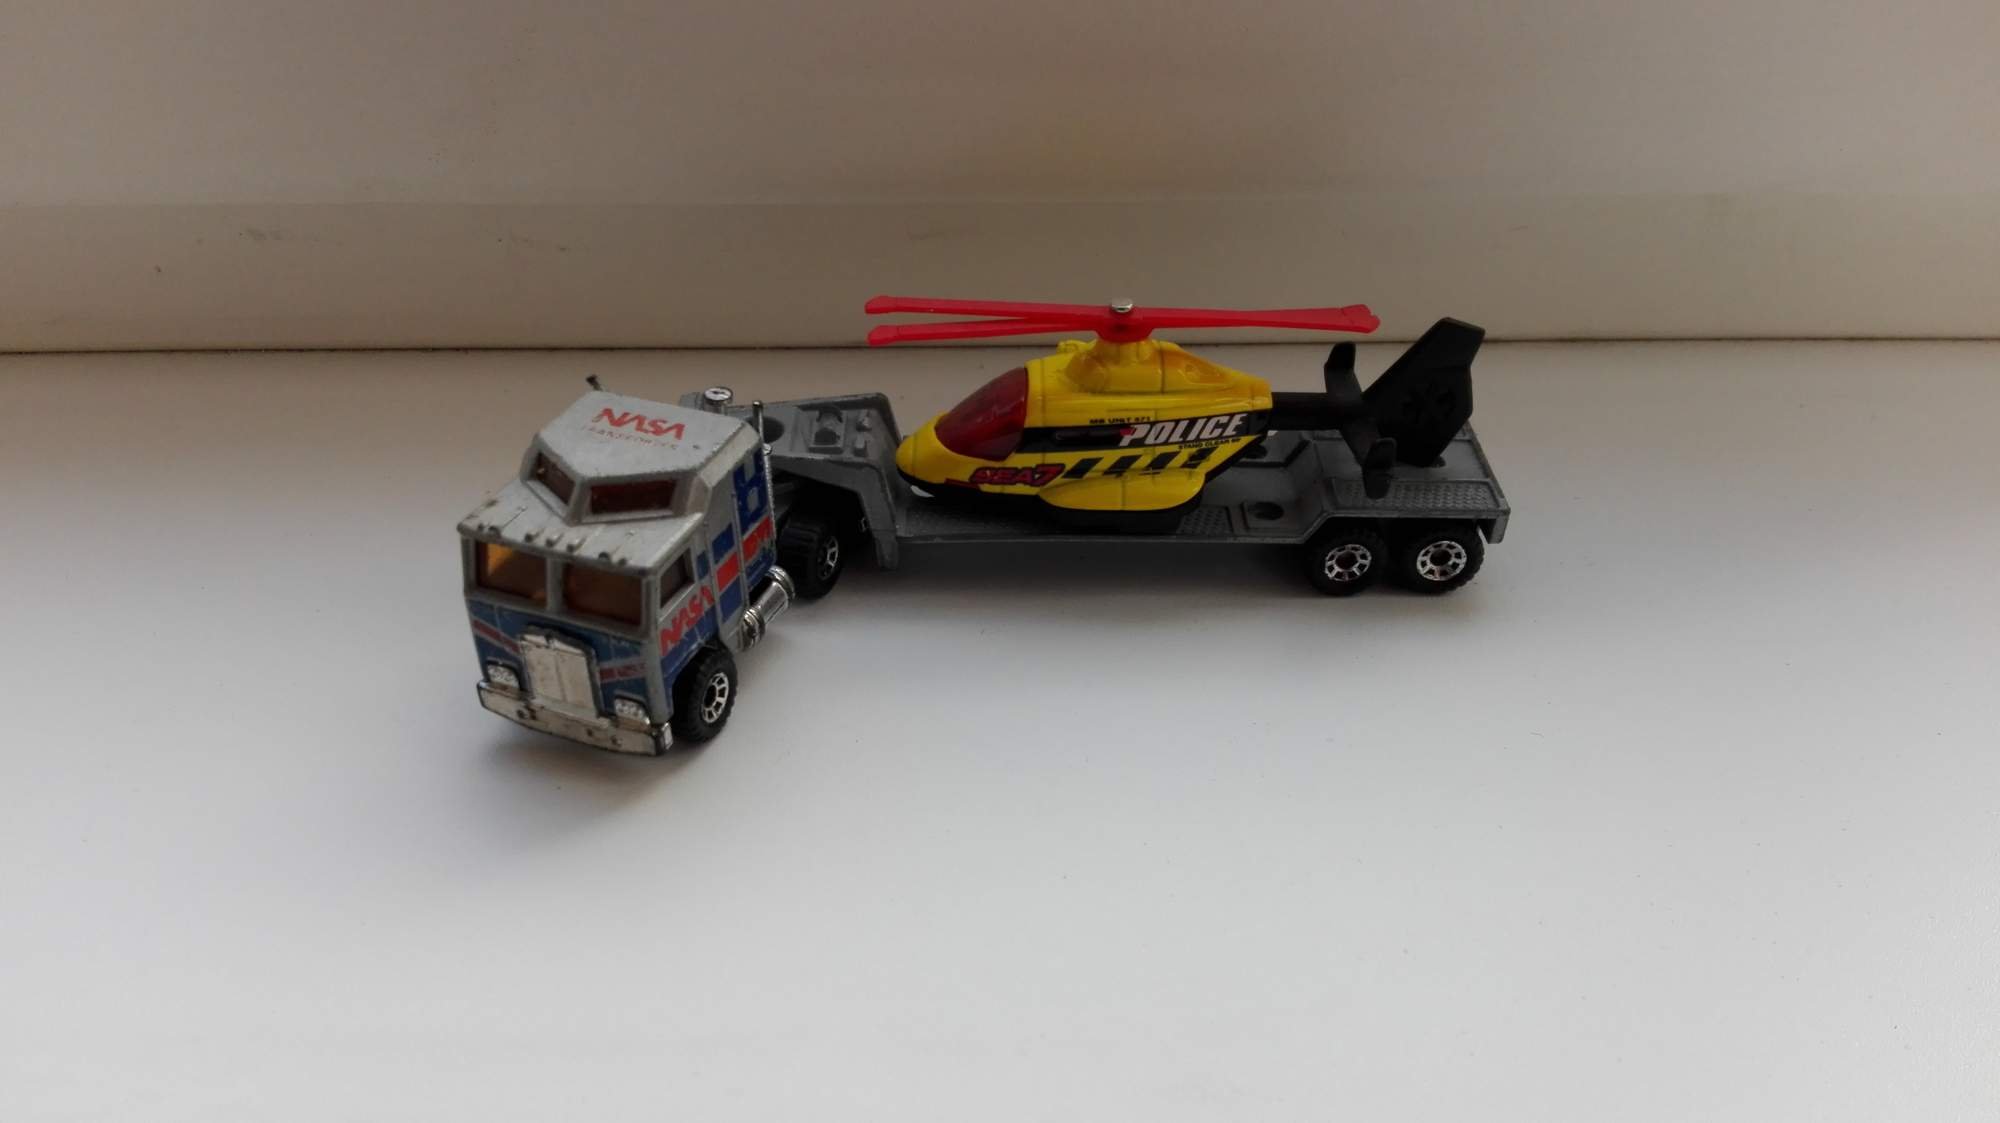 matchbox rescue helicopter with Matchbox Convoy Kenworth K100 Nasa Podvalnik 5752604085 on Matchbox Elite Rescue Squid Marine Boat 22 35 From 40 also 401078499479 in addition 202836320 in addition Matchbox Fire  mand 5 Pack Exclusive 2006 Fire Engine Ladder Truck Yellow P4946264 in addition Help Kodagu Flood Victims.